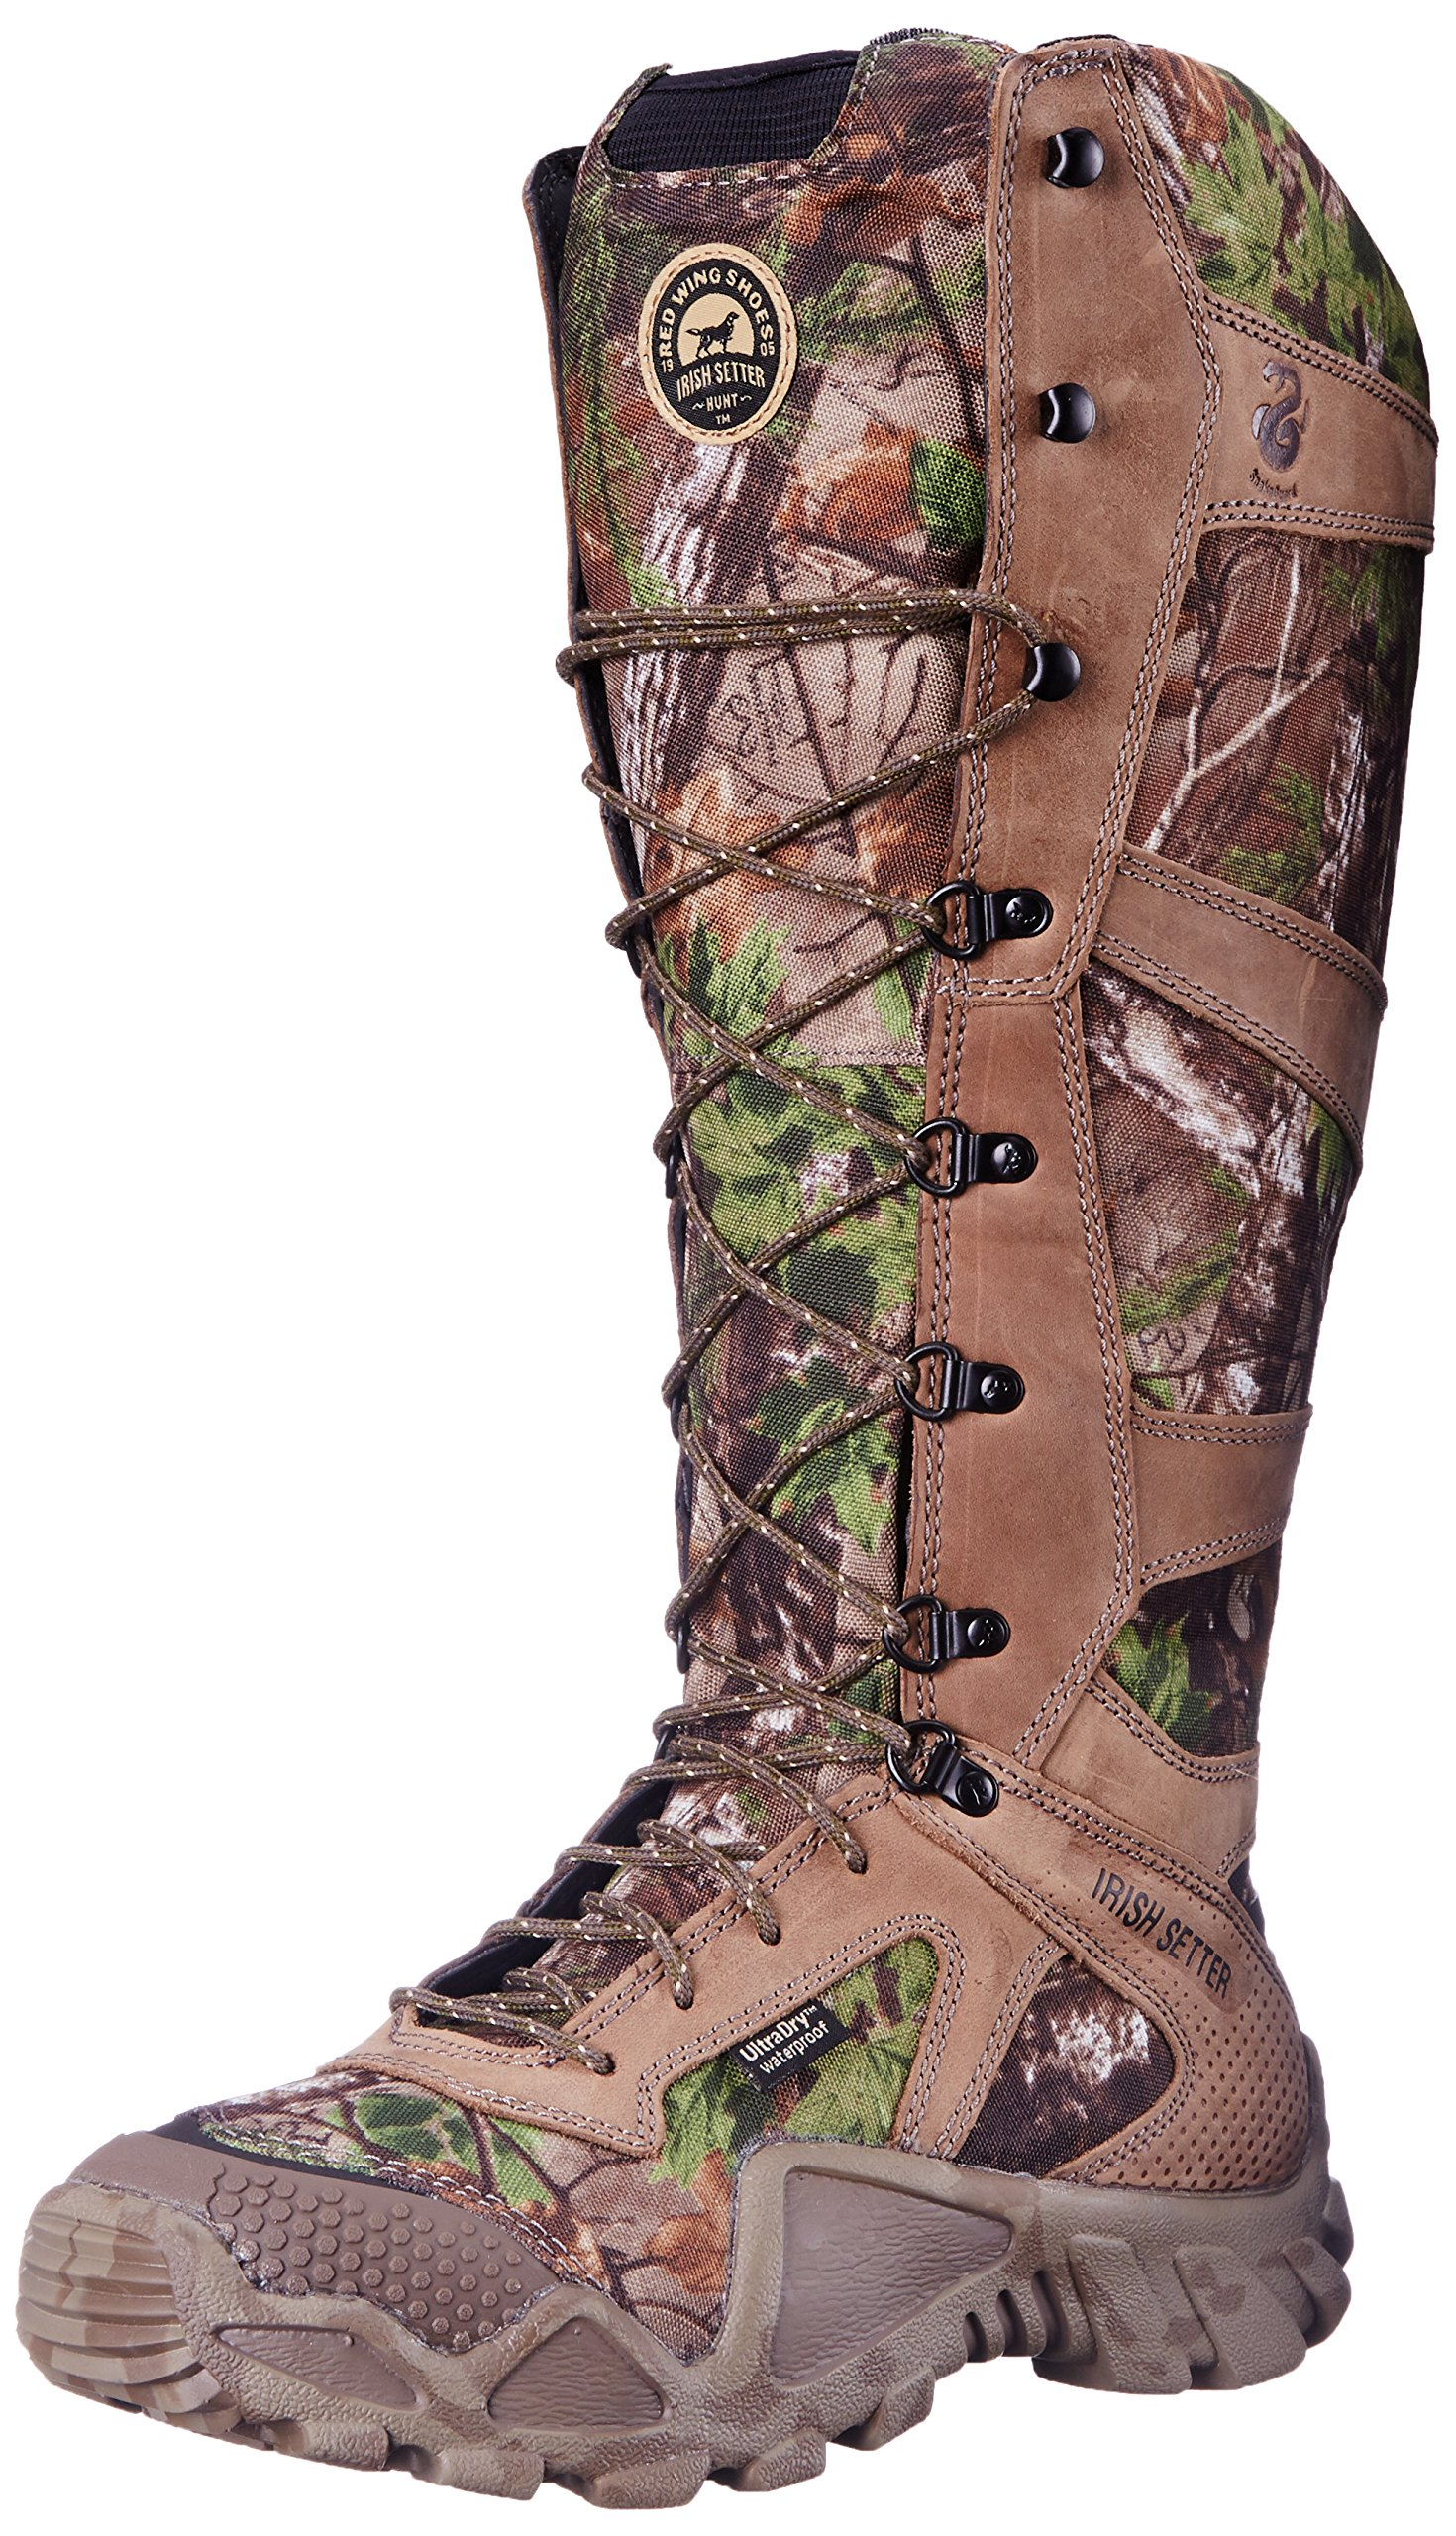 Irish Setter Men's 2875 Vaprtrek Waterproof 17'' Hunting Boot, Realtree Xtra Green,8 EE US by Irish Setter (Image #1)